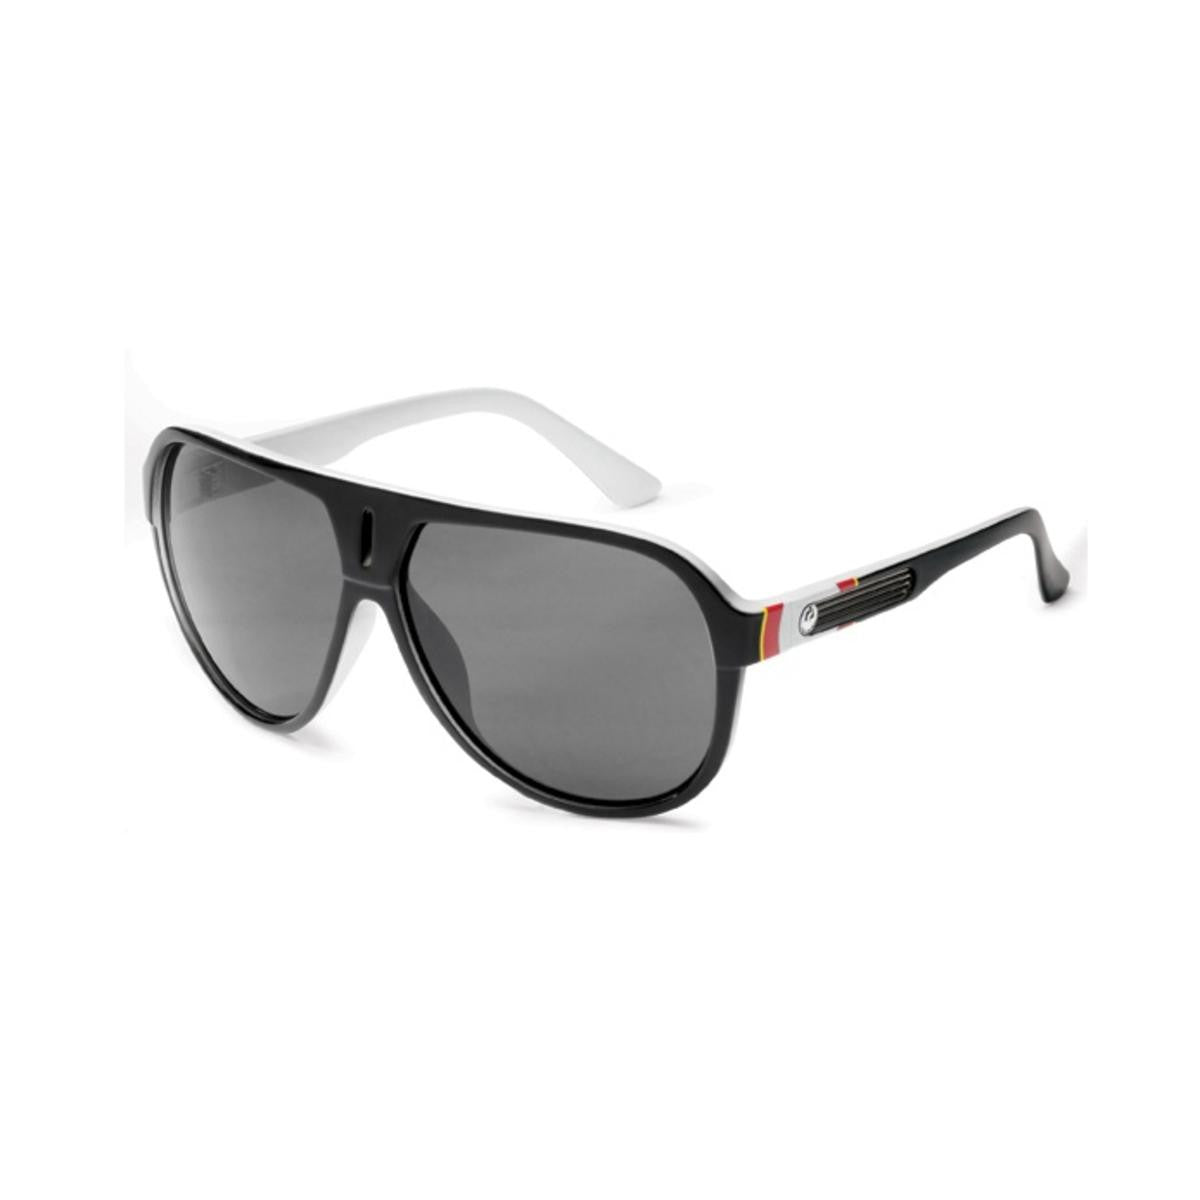 Dragon Experience Unisex Sunglasses